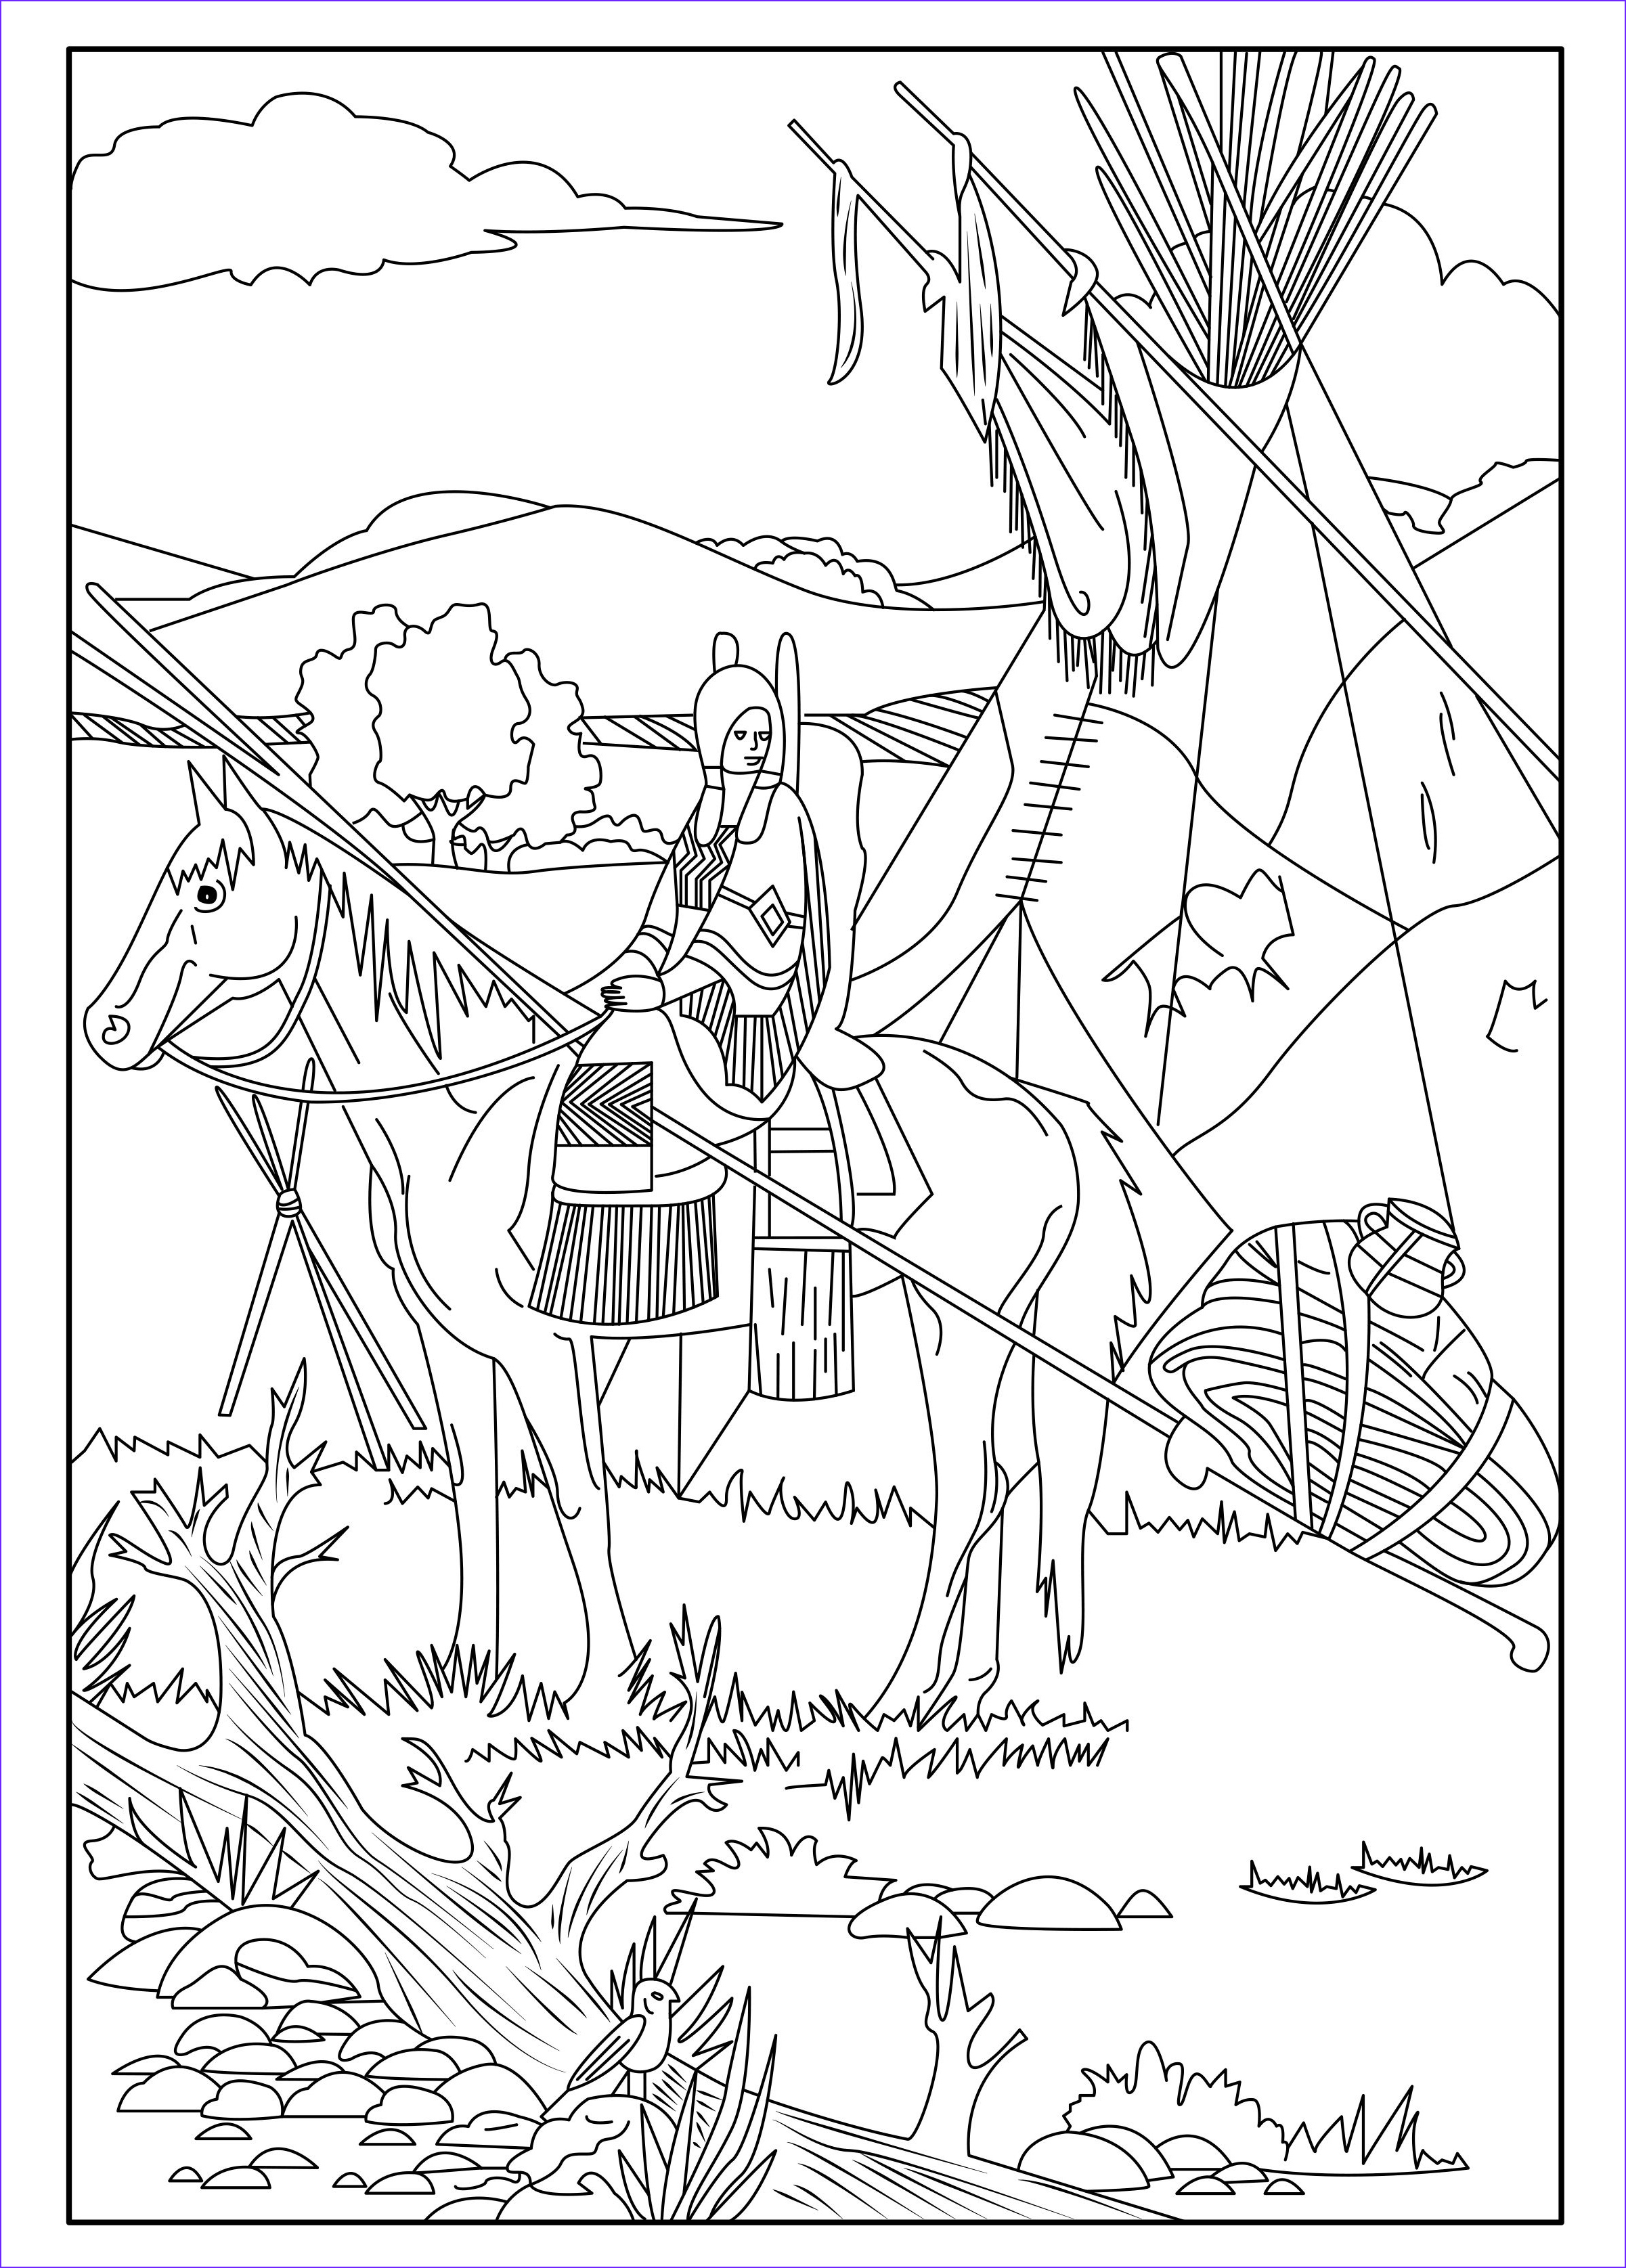 Indian Coloring Book Inspirational Photography This Coloring Page Show A Native American On His Horse